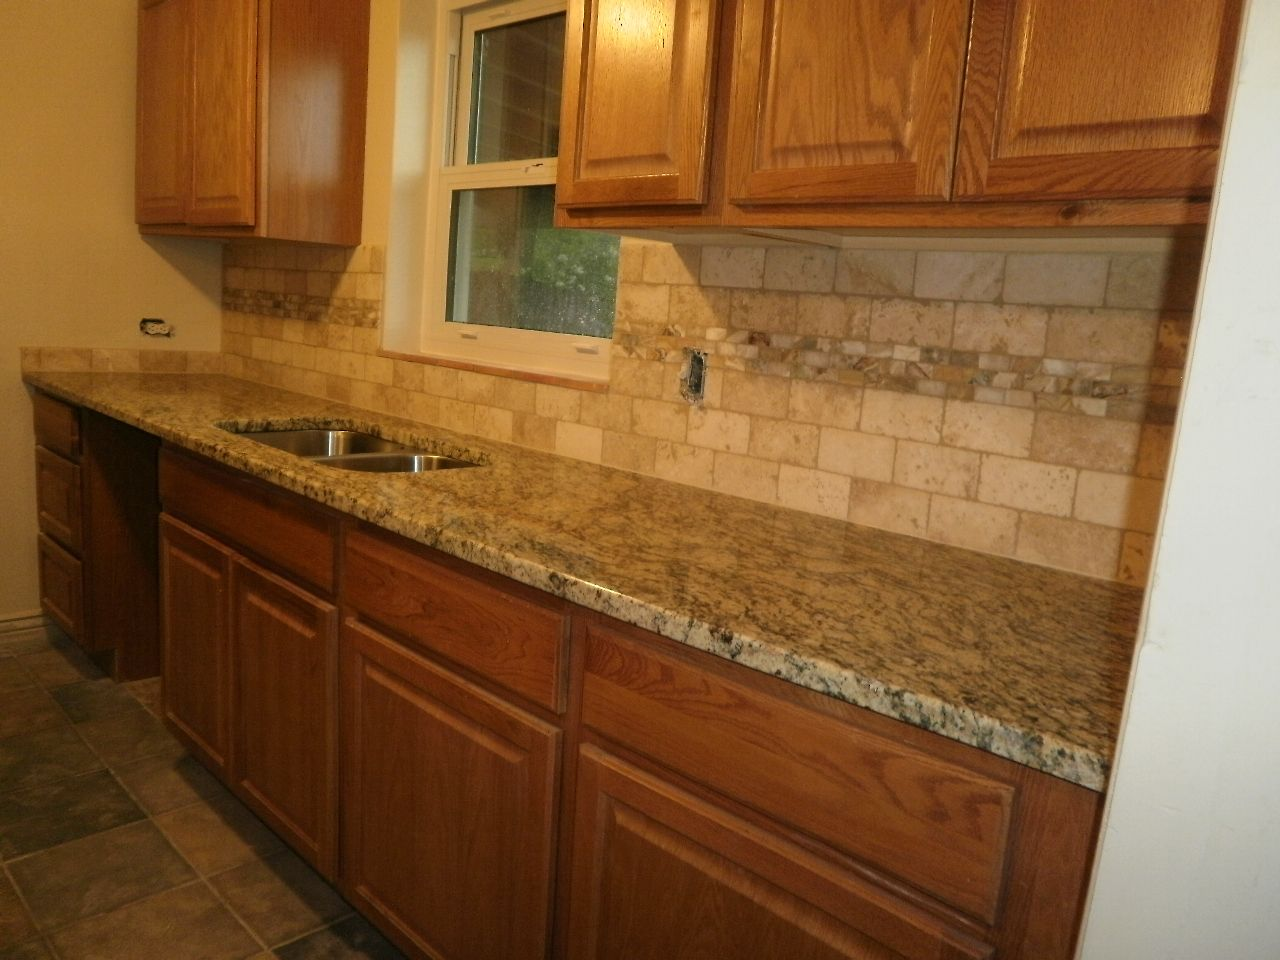 Backsplash With Gold Granite Countertop Here Are Santa Cecilia Pictures And Tile